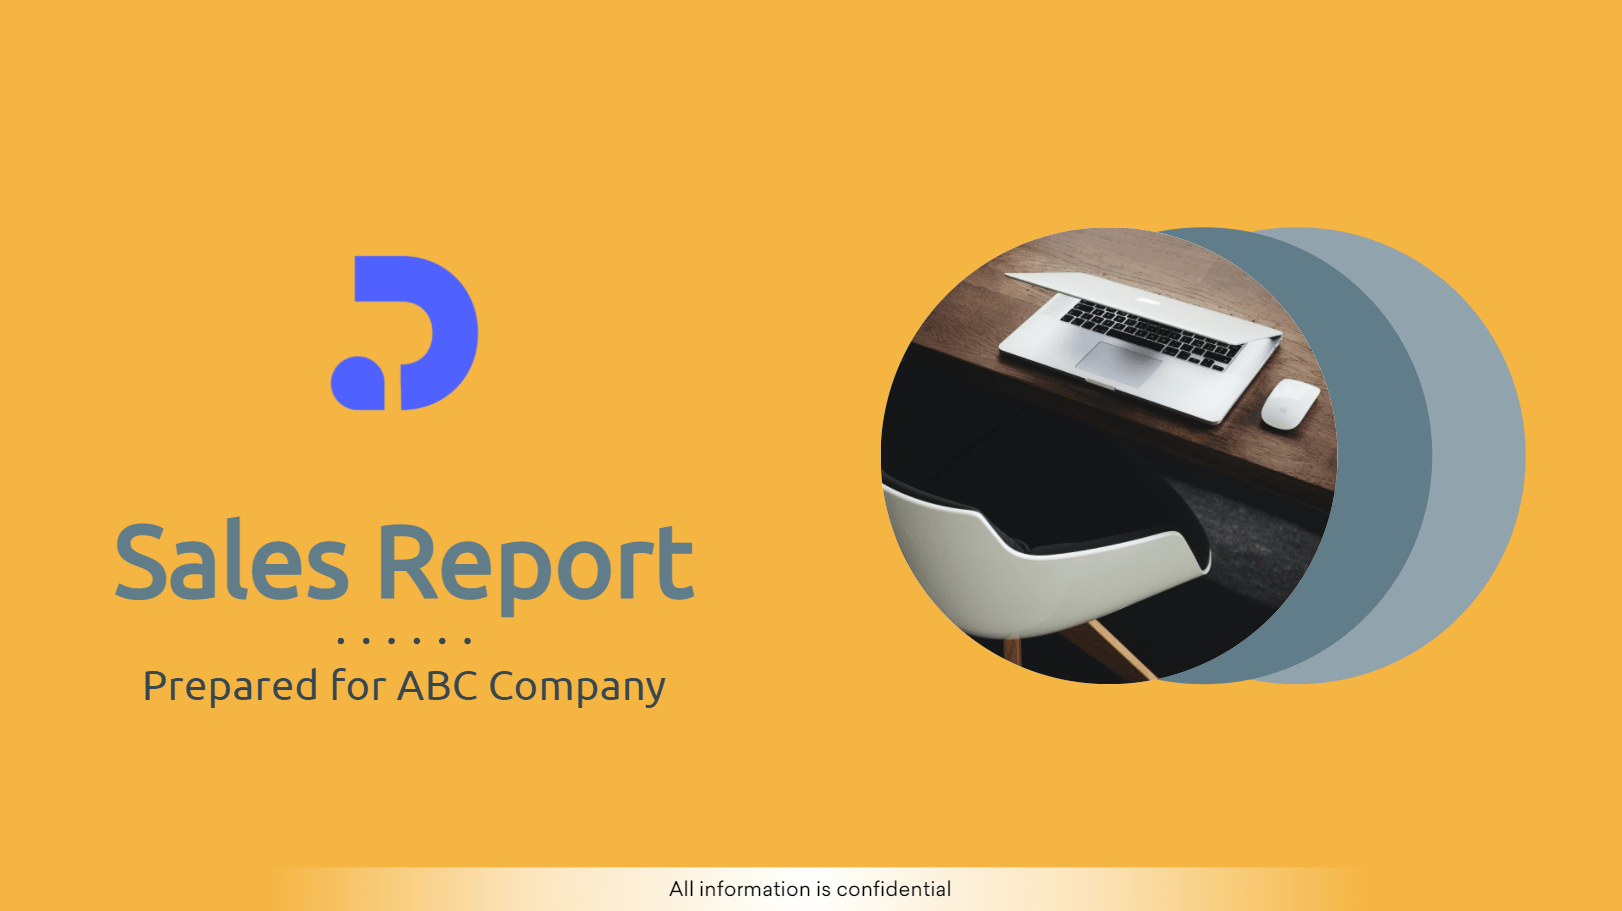 A sales report is a document that can report an offer to a client of a document who reports to the sales supervisor. In both cases, the sales report should include a solid offer with all details. This sales report template is a good start for salespeople to craft a sales-related document. Start creating your document now!